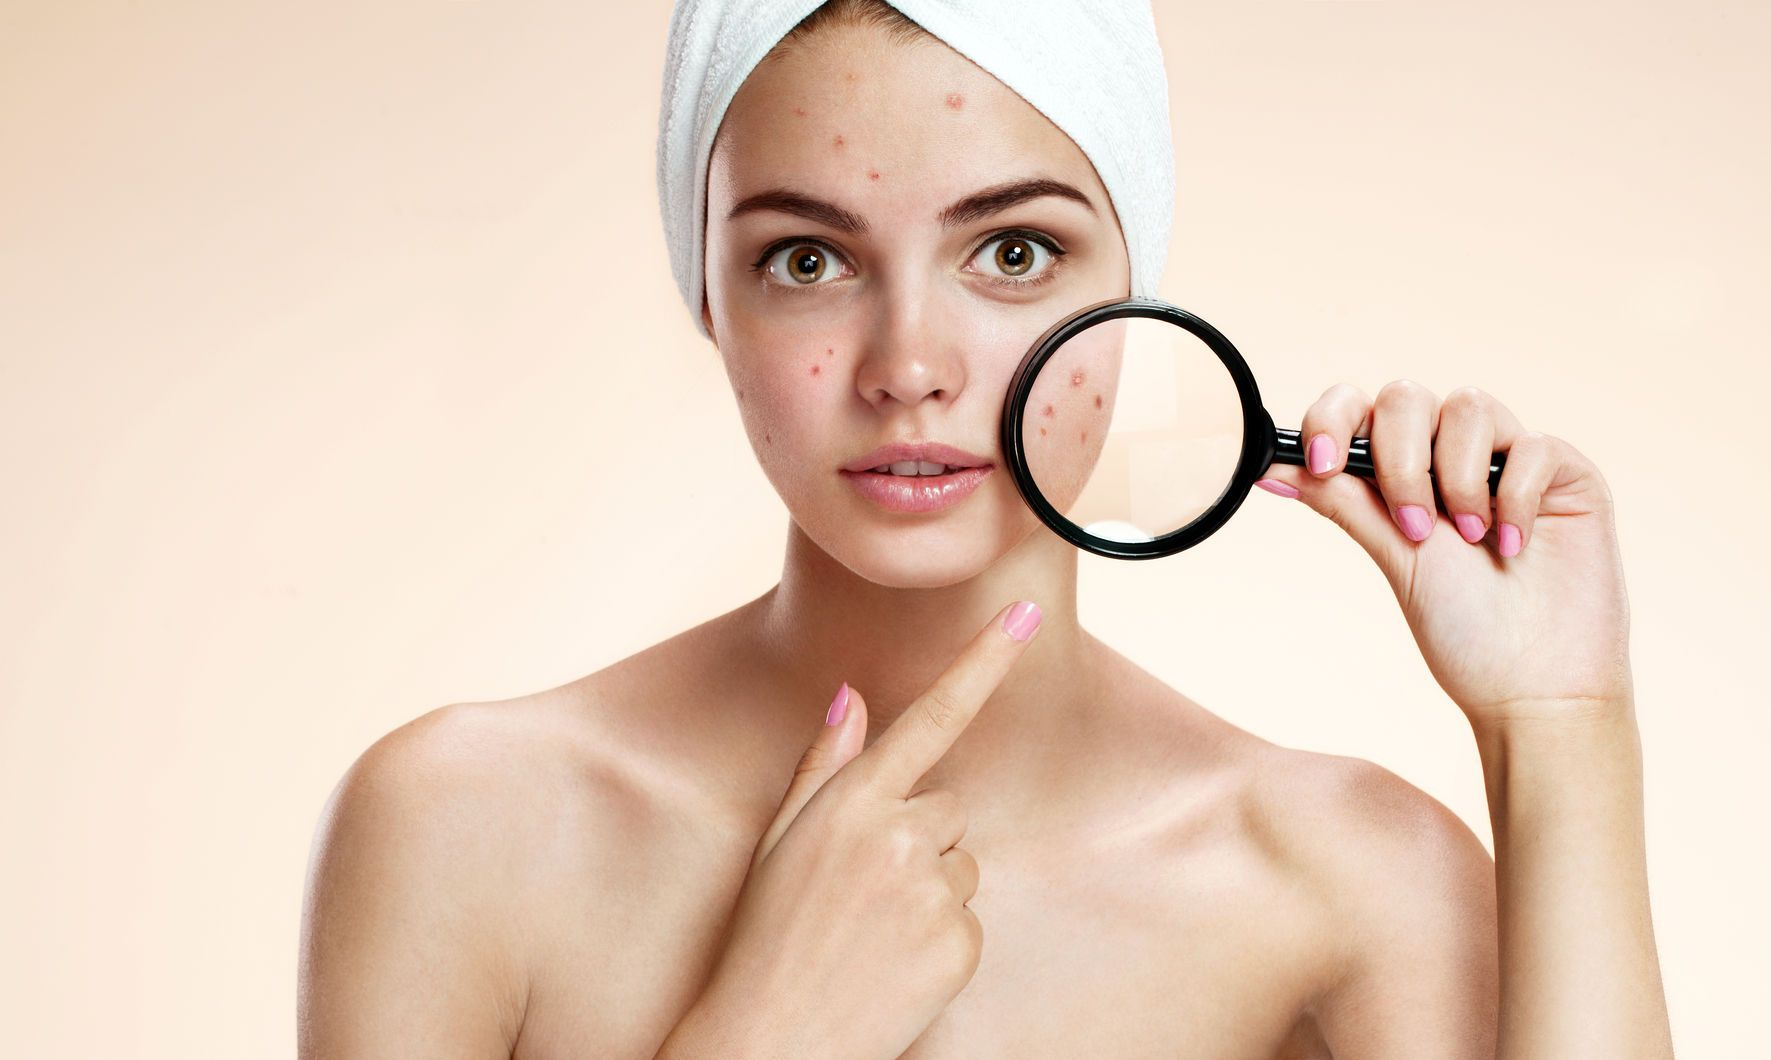 acne treatment tips from a dermatologist